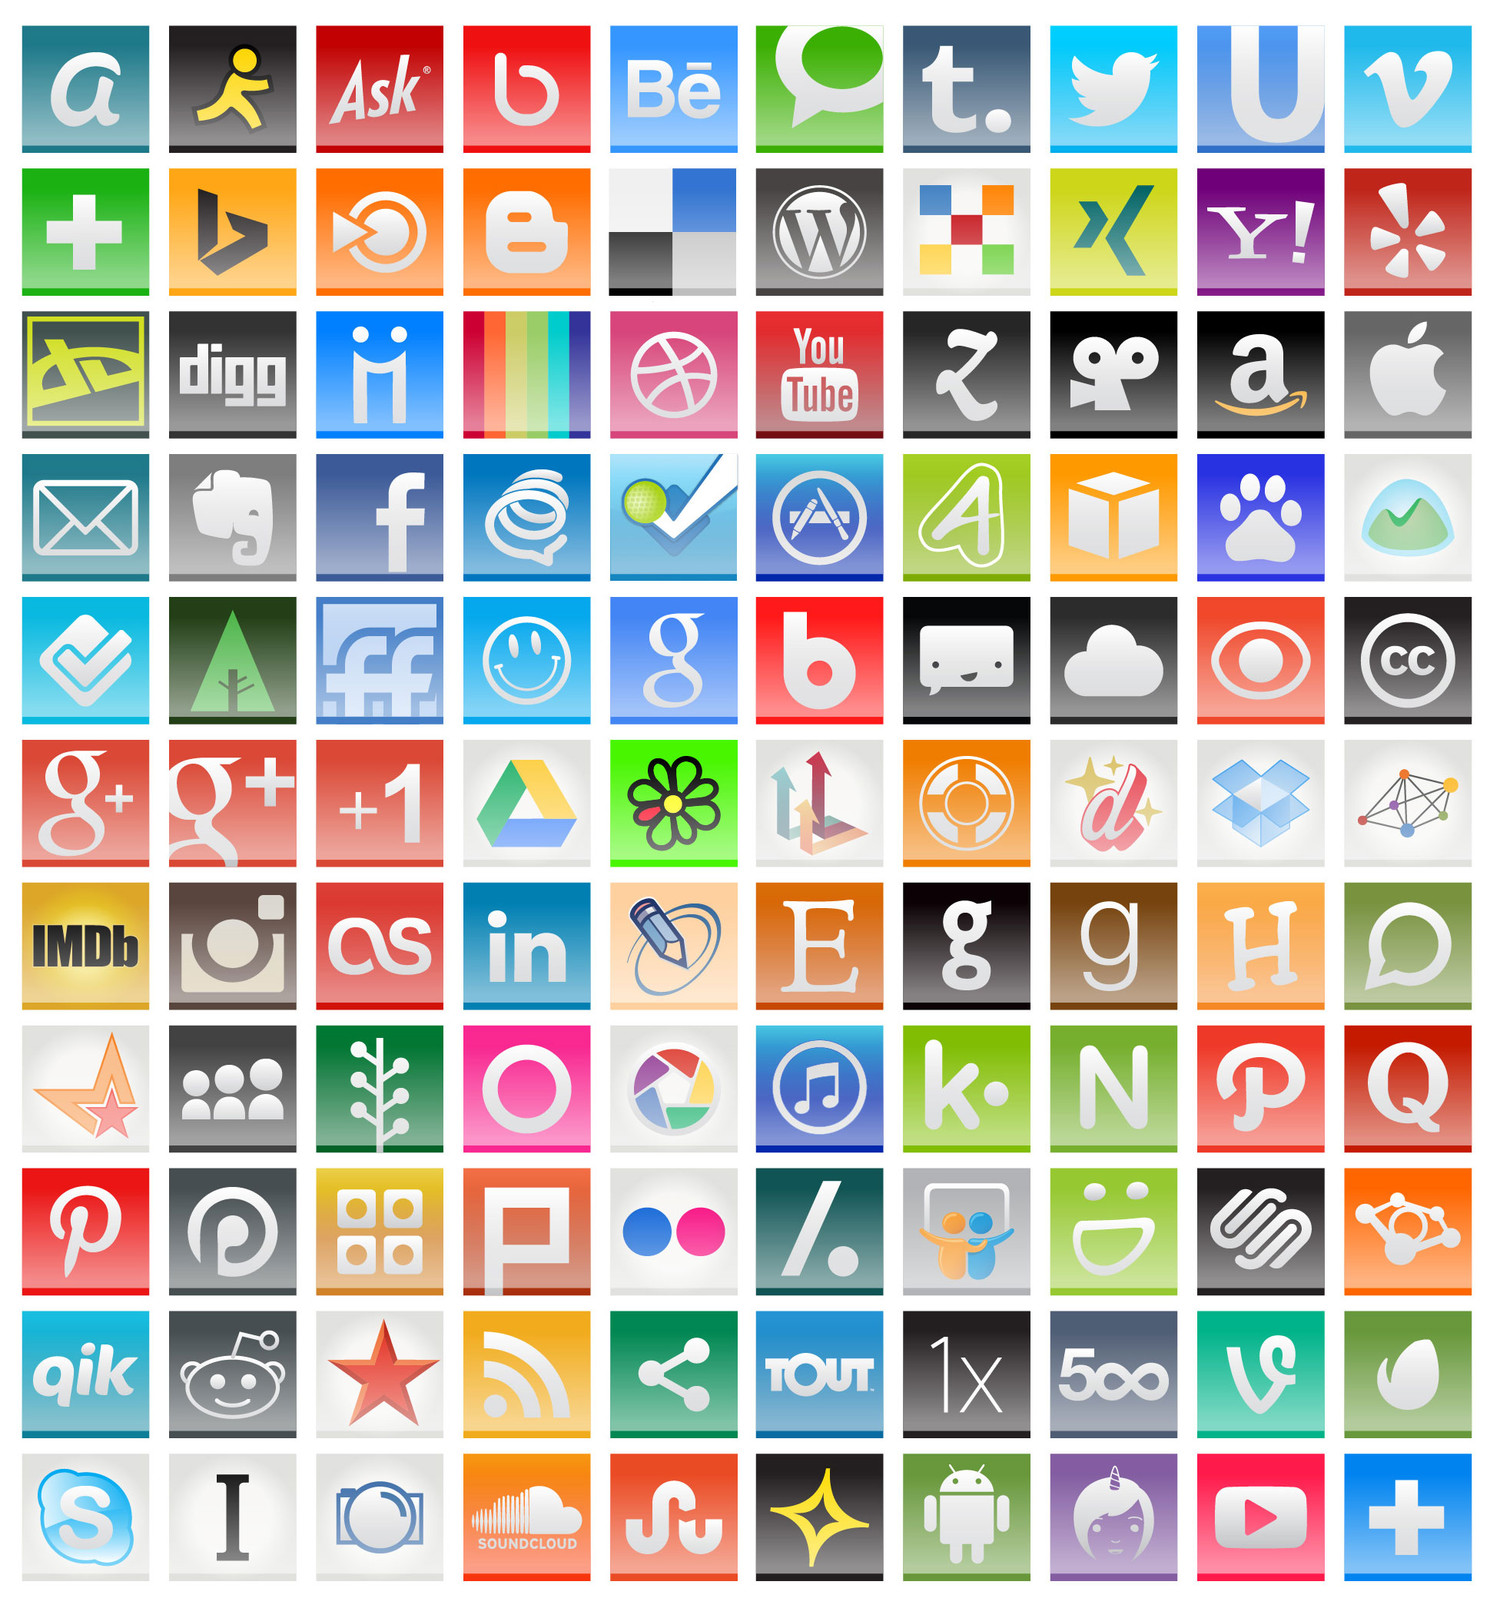 Design Icons For Web / Apps or